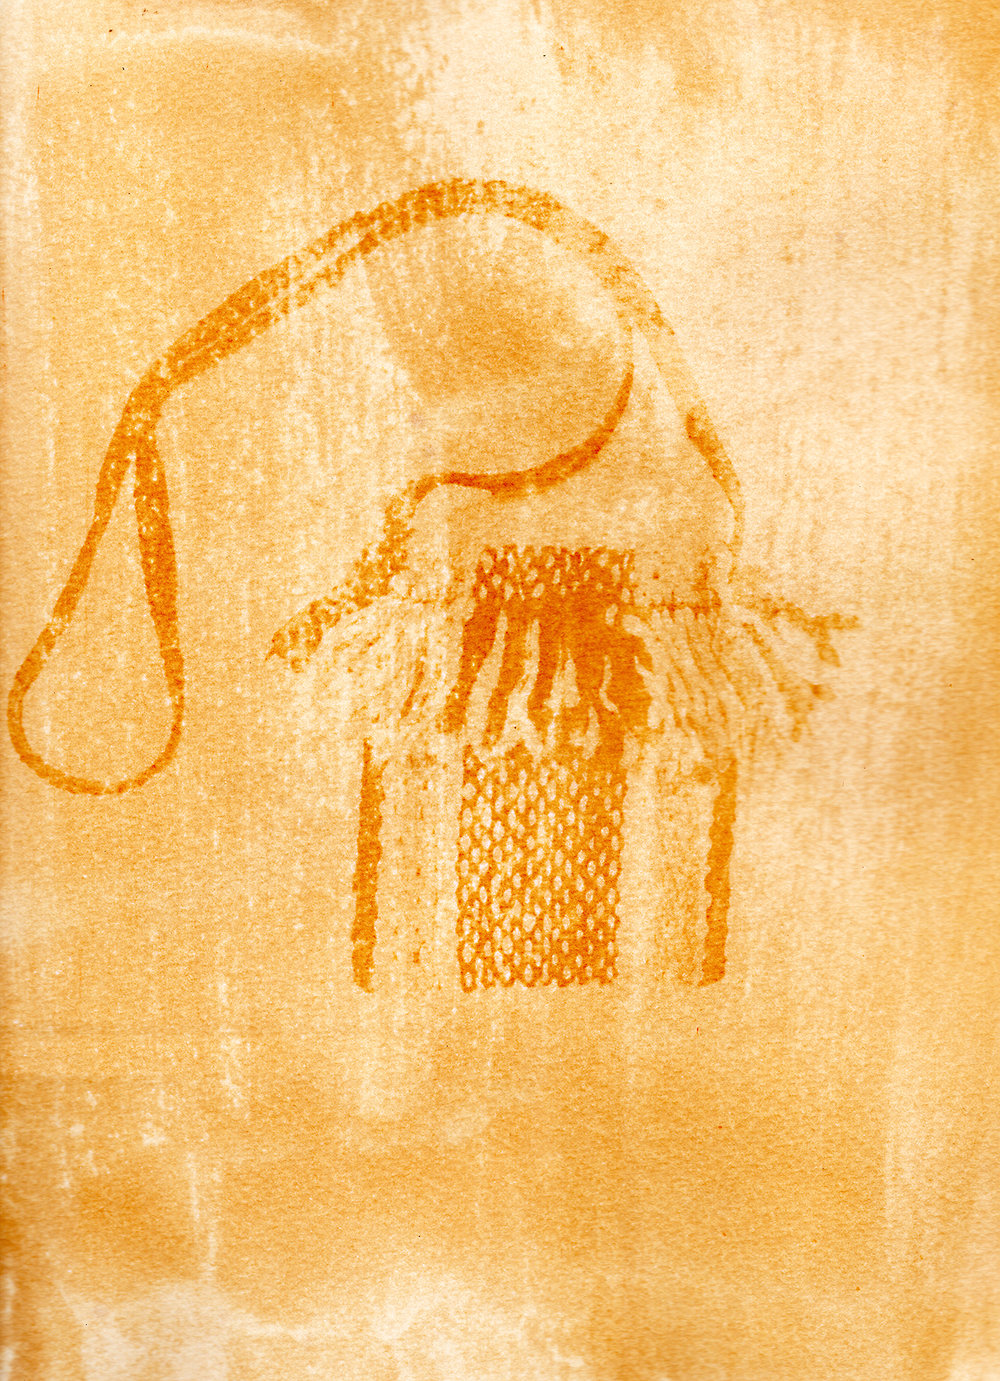 """Detail of a bag made by the """"Hilanderas del Fin del Mundo"""", a group of women dedicated to retake traditions of embroidery and weaving by invoking local production against the advance of imports using natural raw materials produced in the island. Scan of an Anthotype made with natural dyes created with Turmeric. Photographer: Luján Agusti. Tierra del Fuego. April 15th, 2018"""